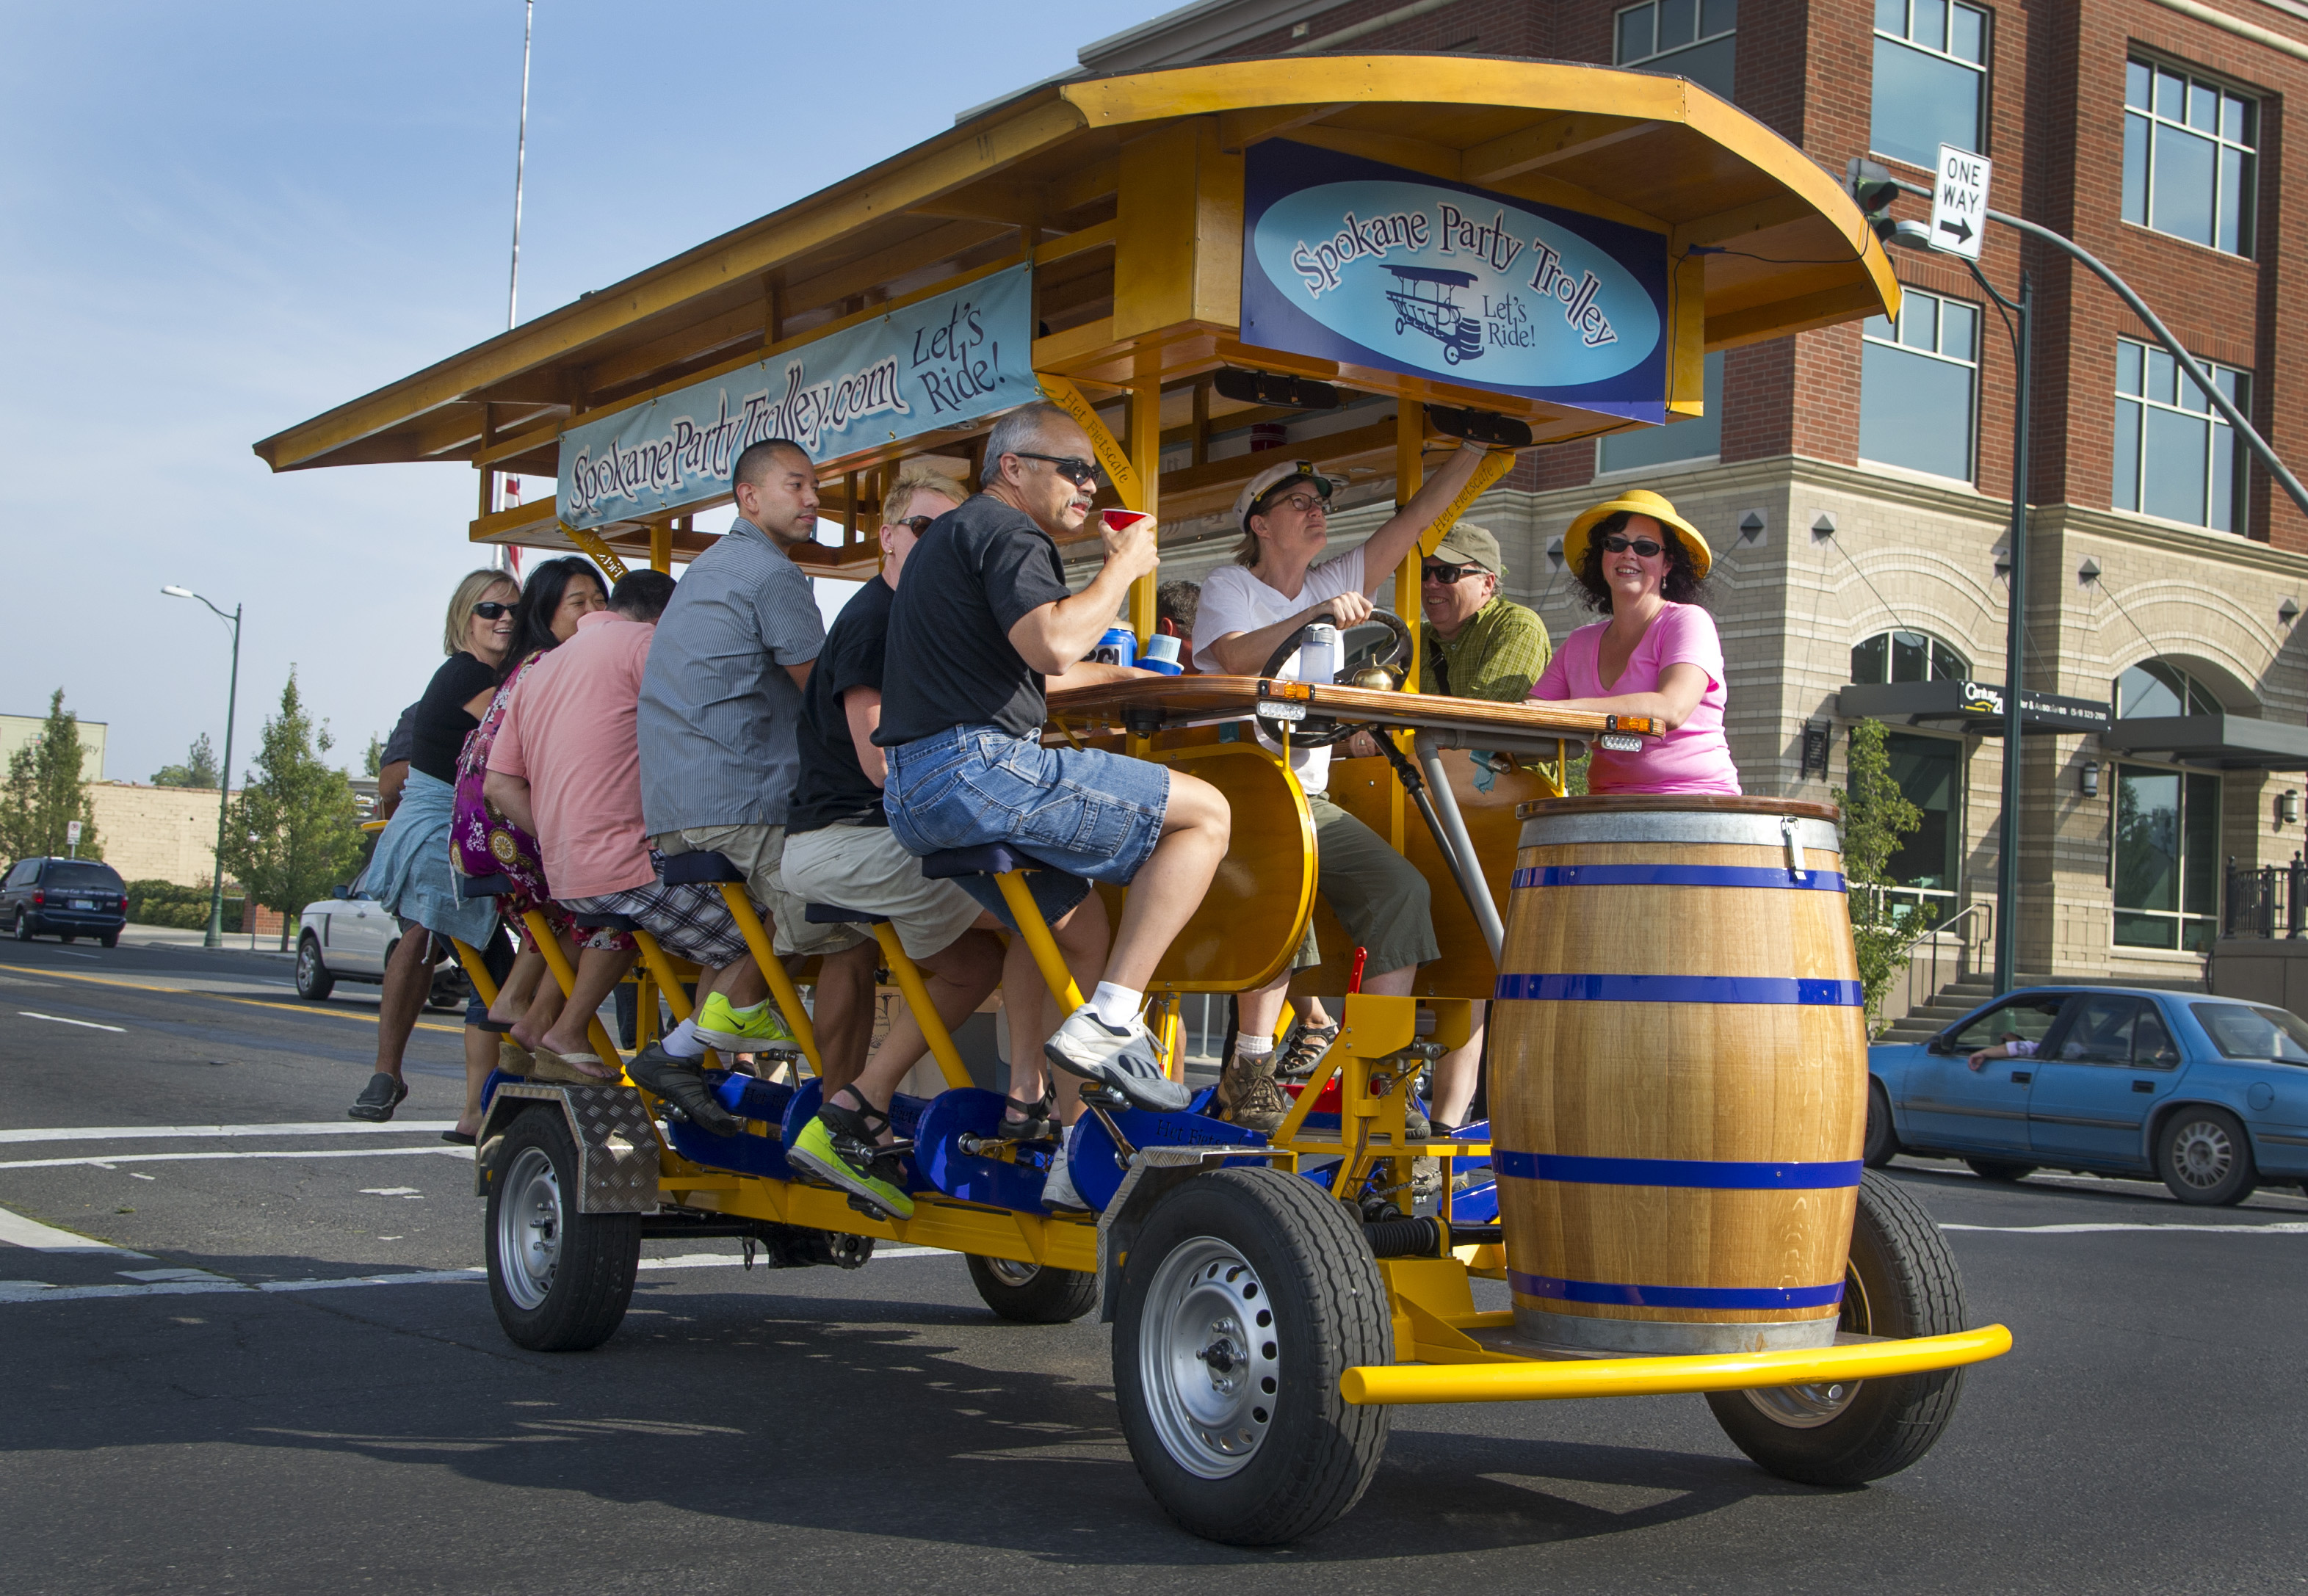 Spokane Party Trolley embraces drinking and riding | The Spokesman ...